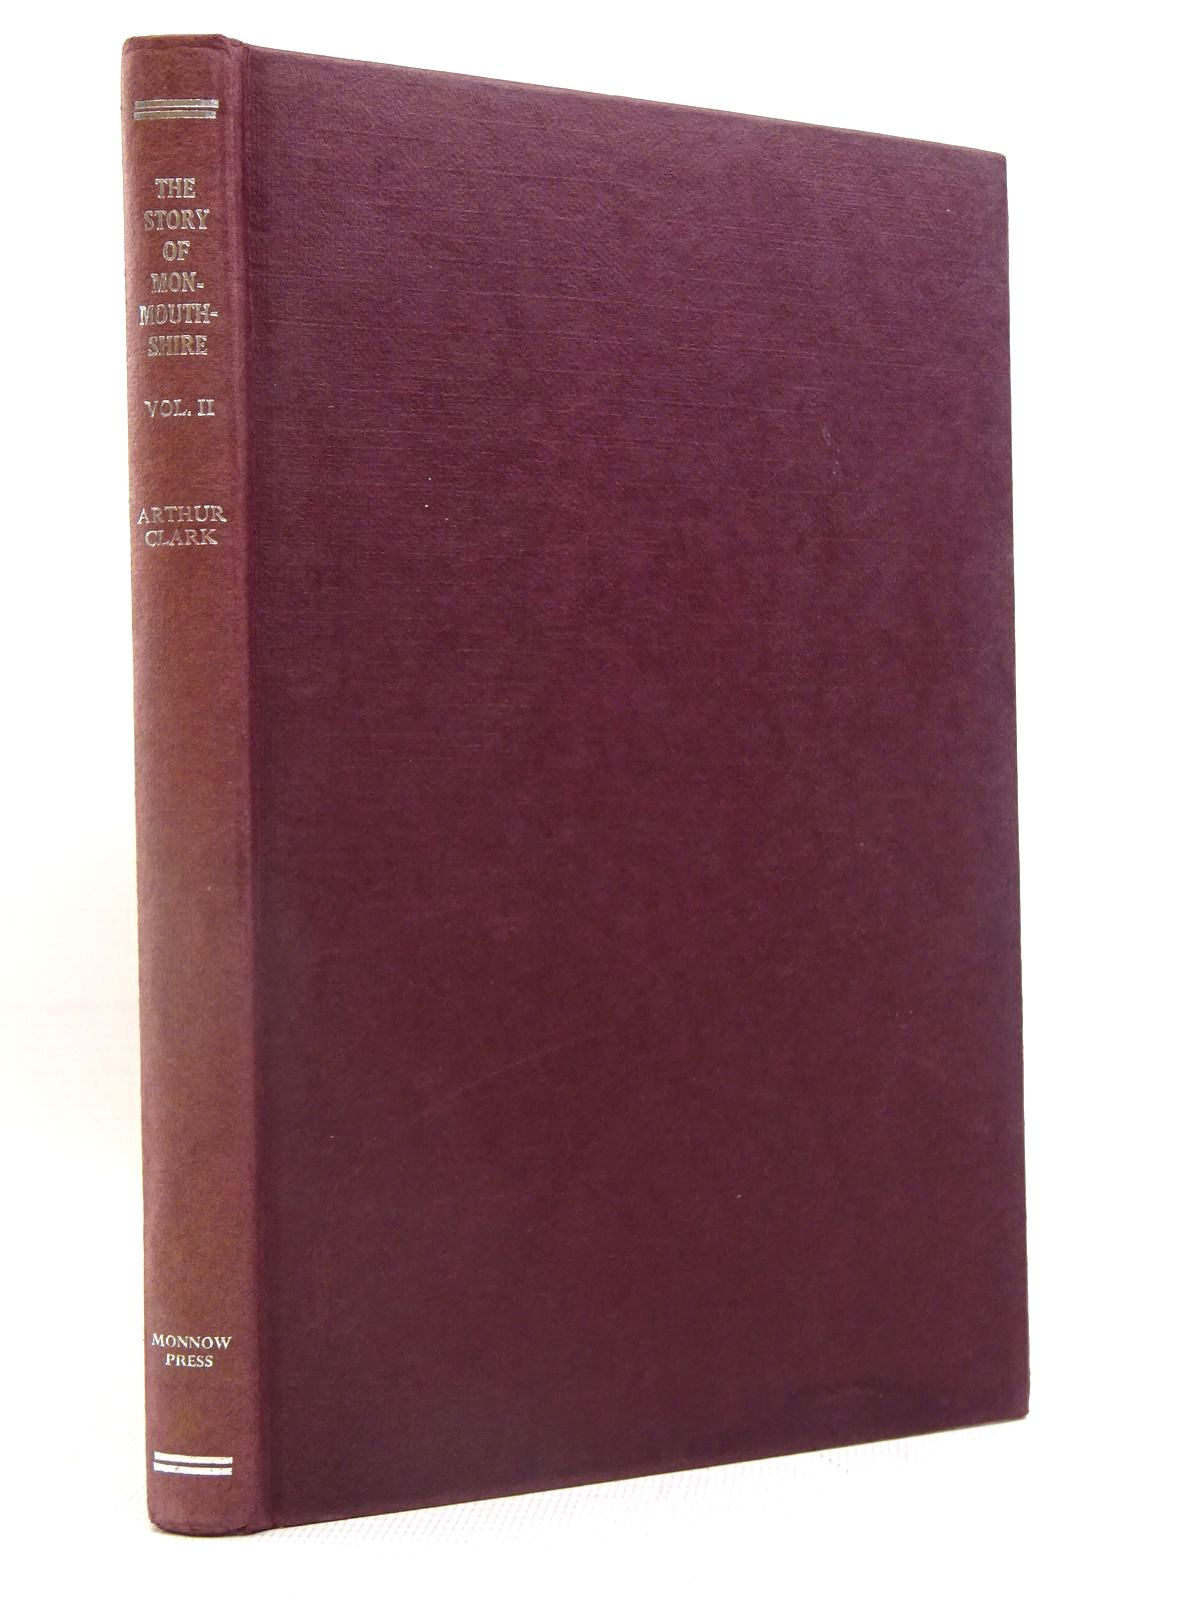 Photo of THE STORY OF MONMOUTHSHIRE VOLUME TWO written by Clark, Arthur published by Monnow Press (STOCK CODE: 1317555)  for sale by Stella & Rose's Books